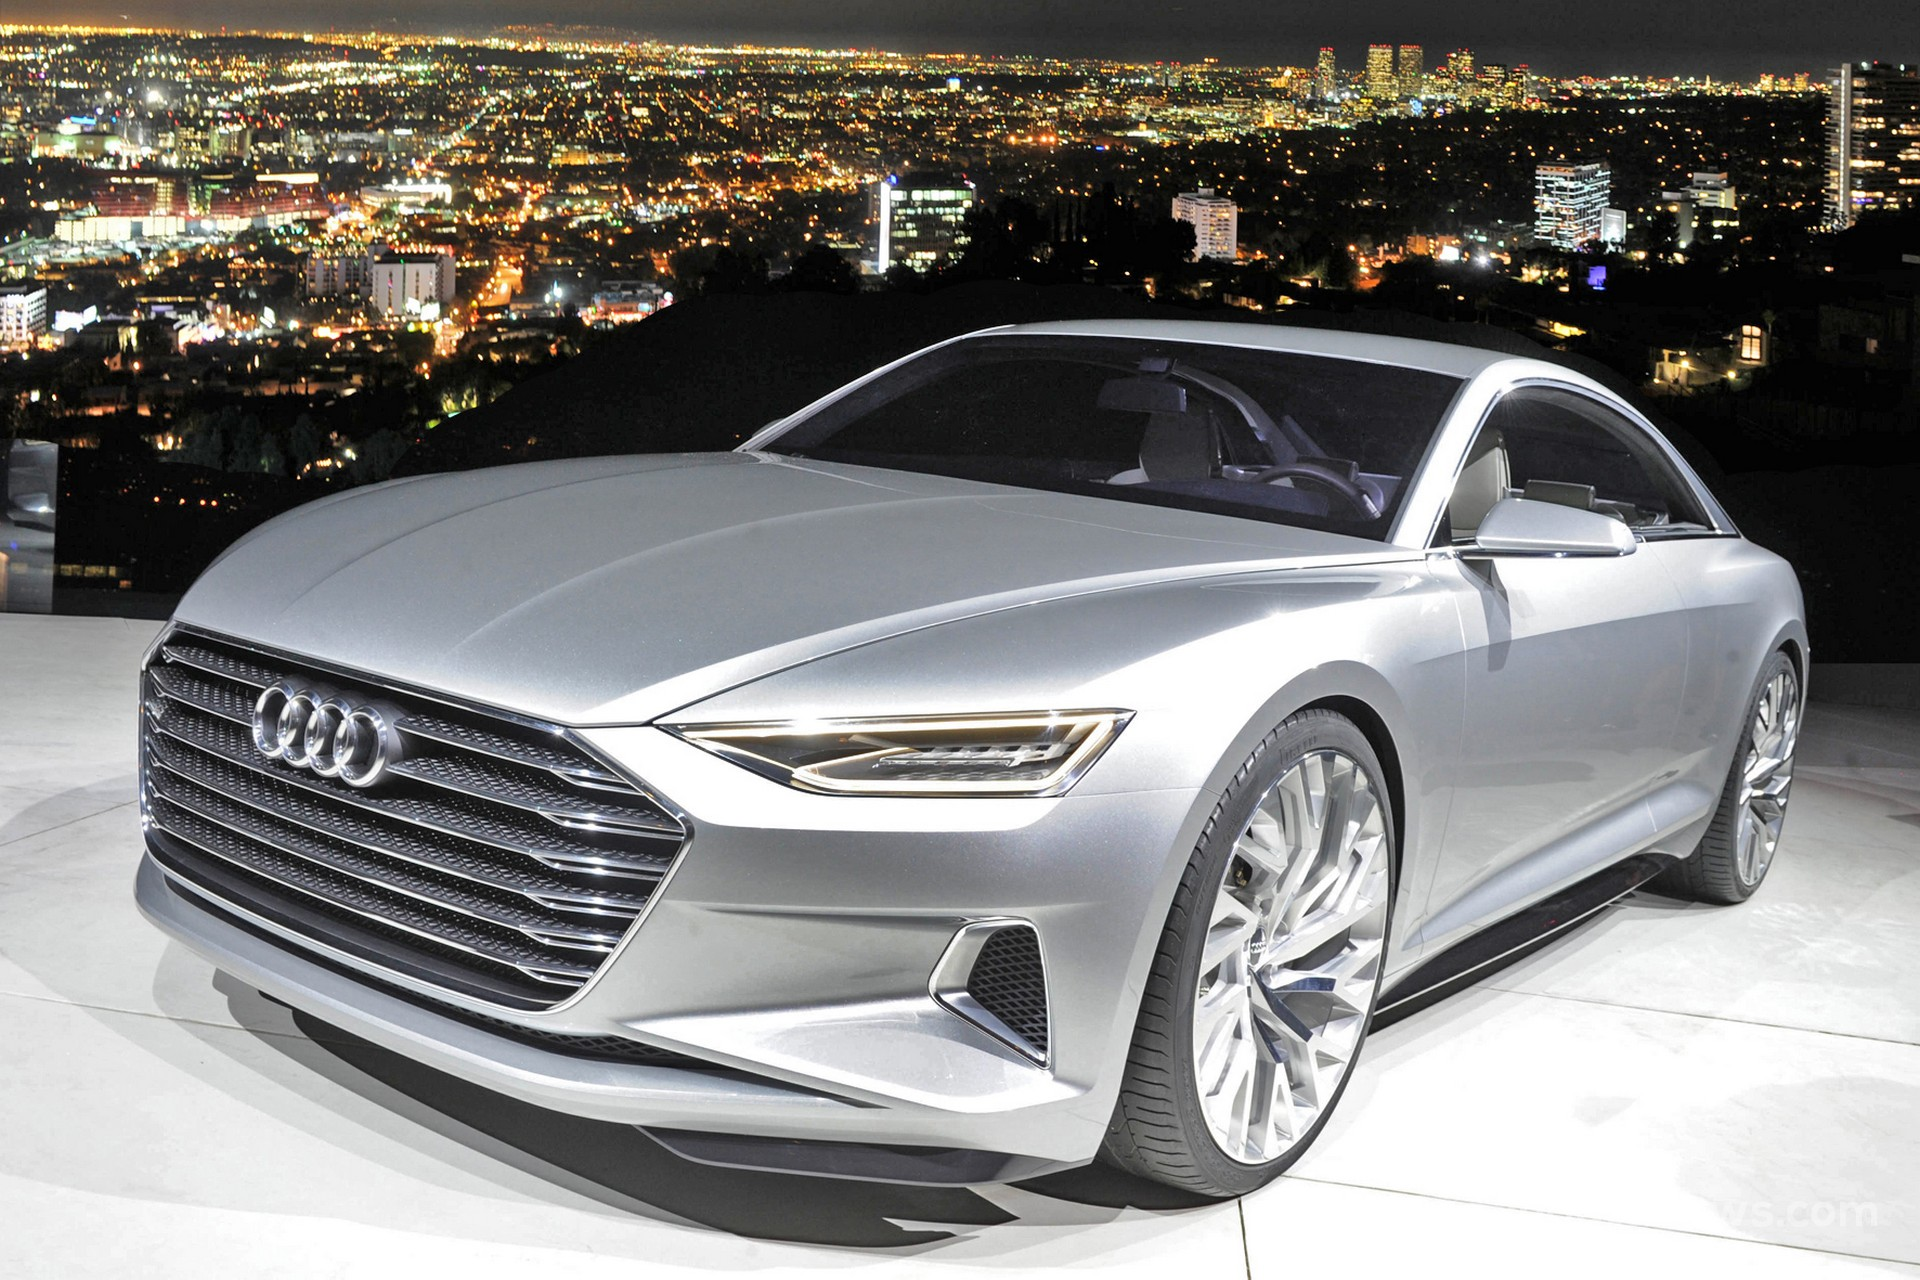 Audi prologue 01 Images - L.A. Auto Show LIVE: Audi Prologue Concept